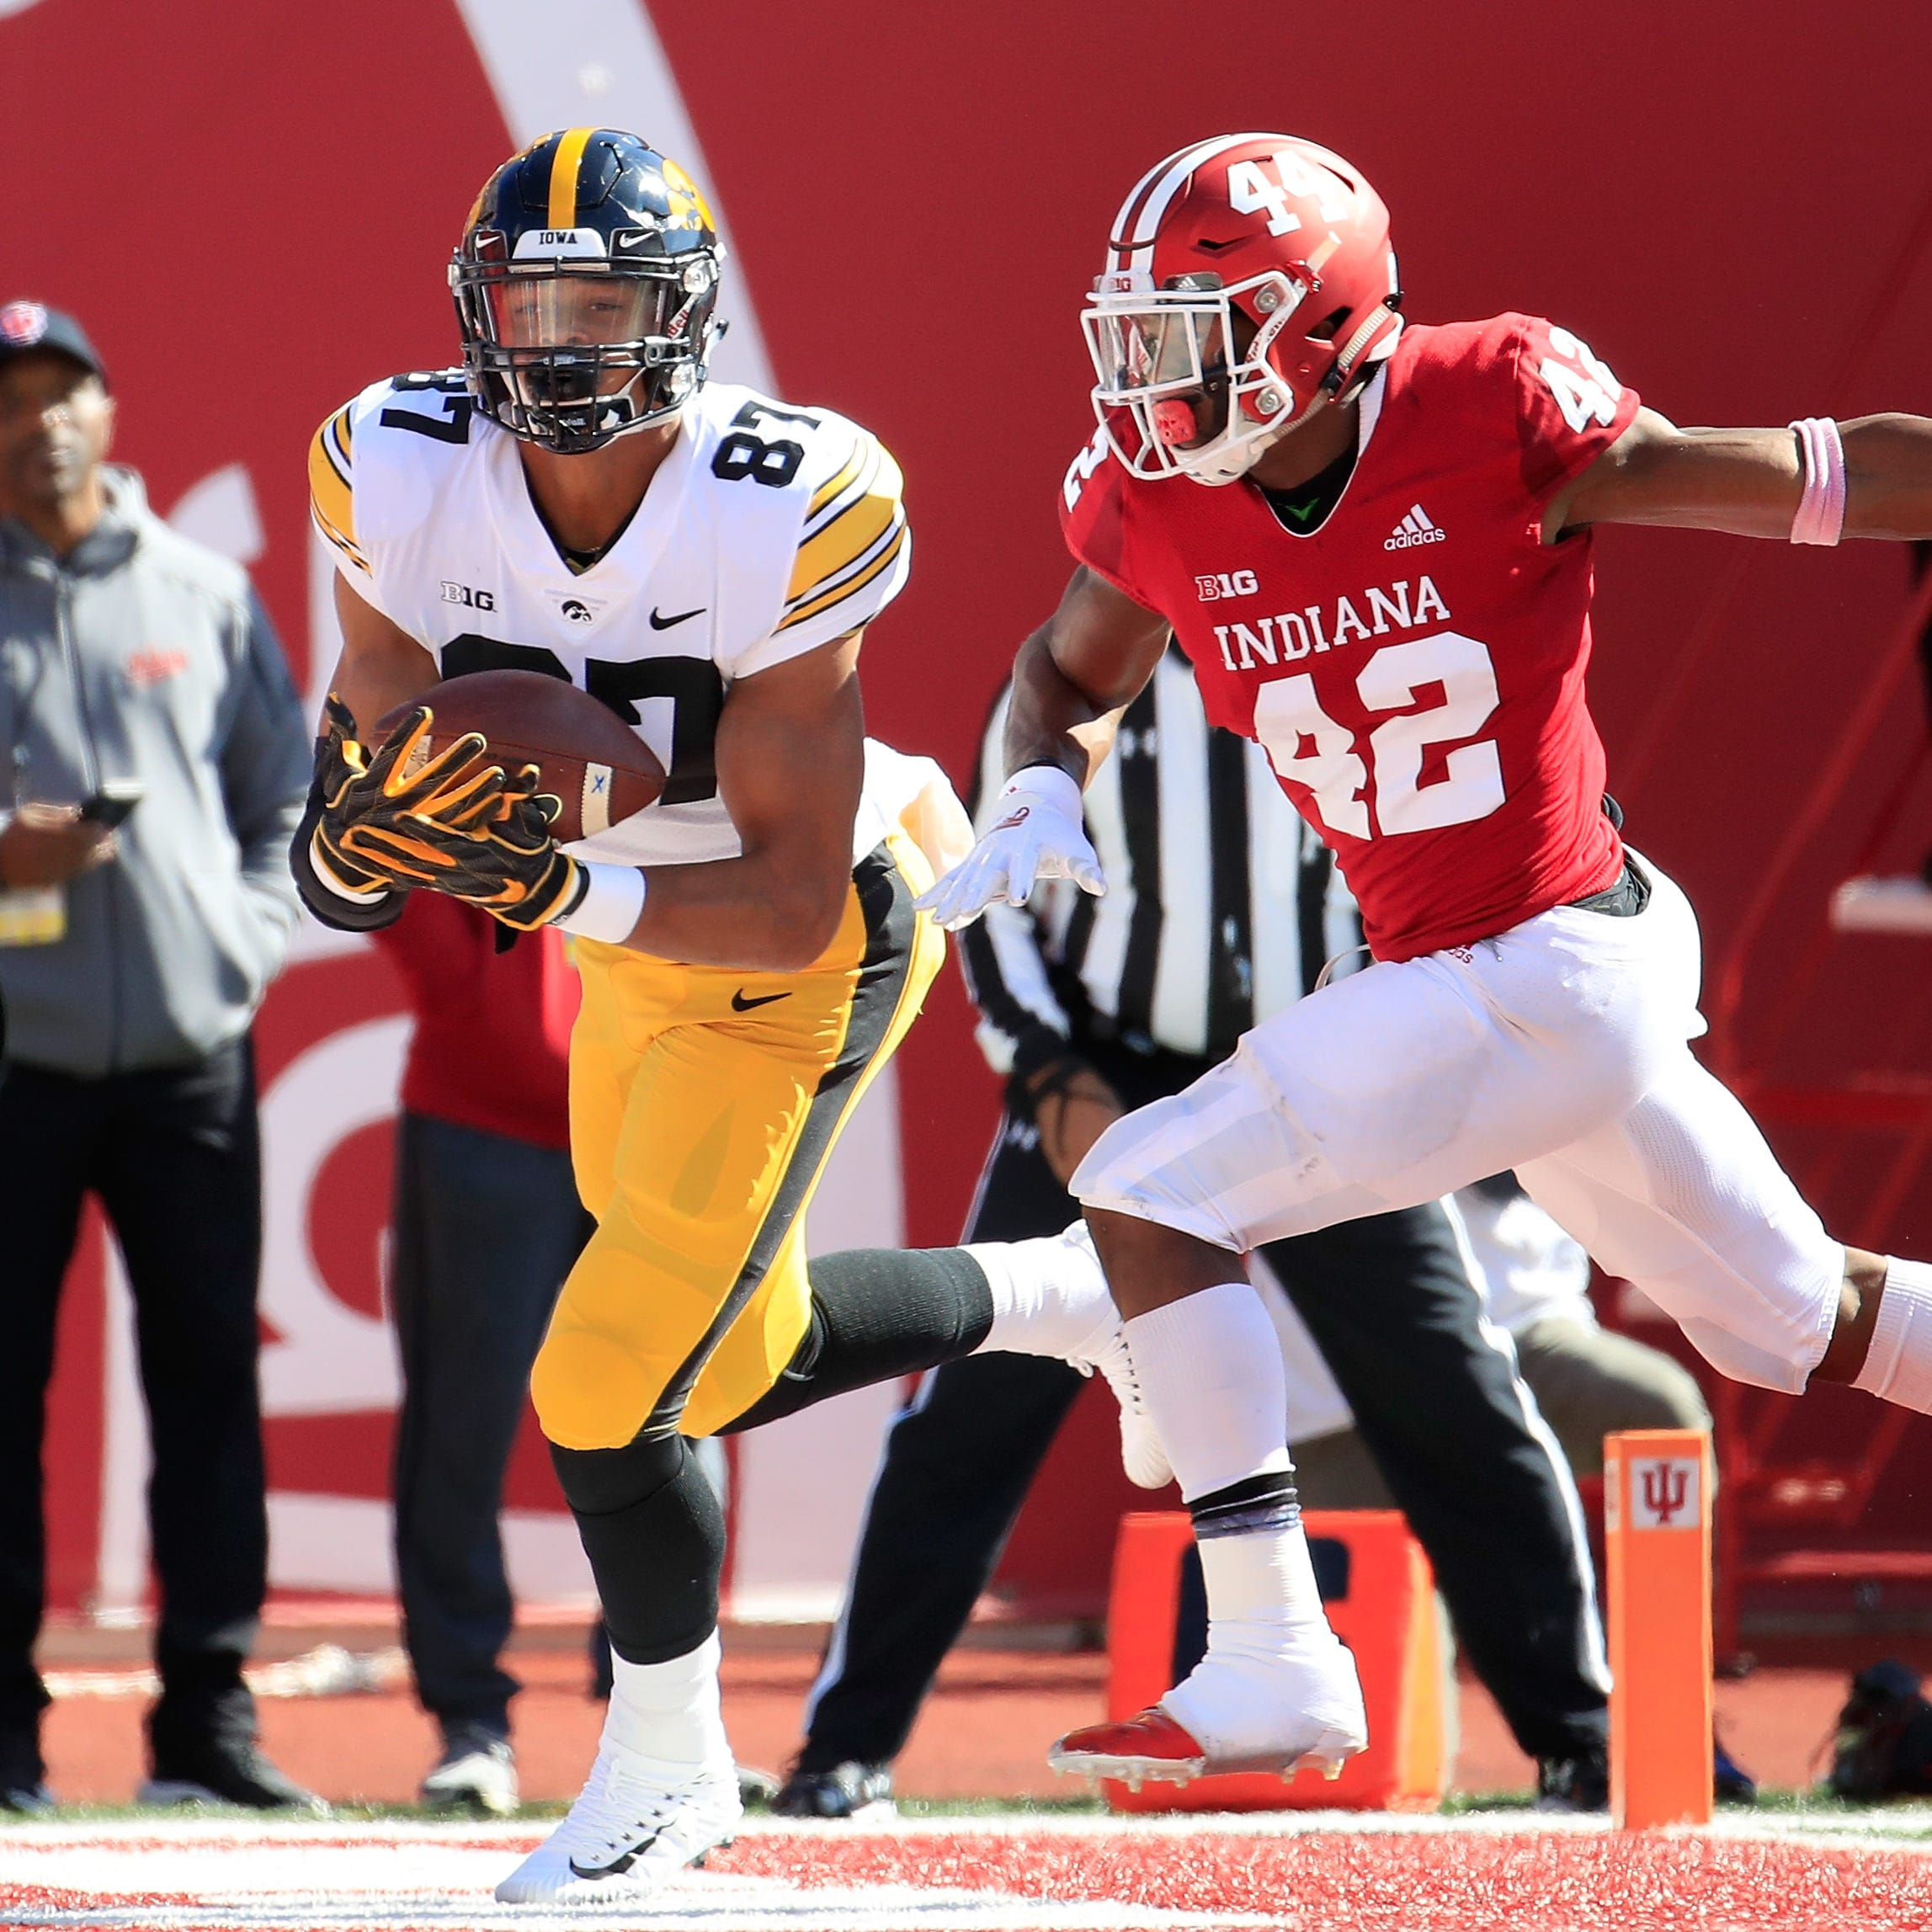 Iowa football: Tight ends Noah Fant, T.J. Hockenson share national award